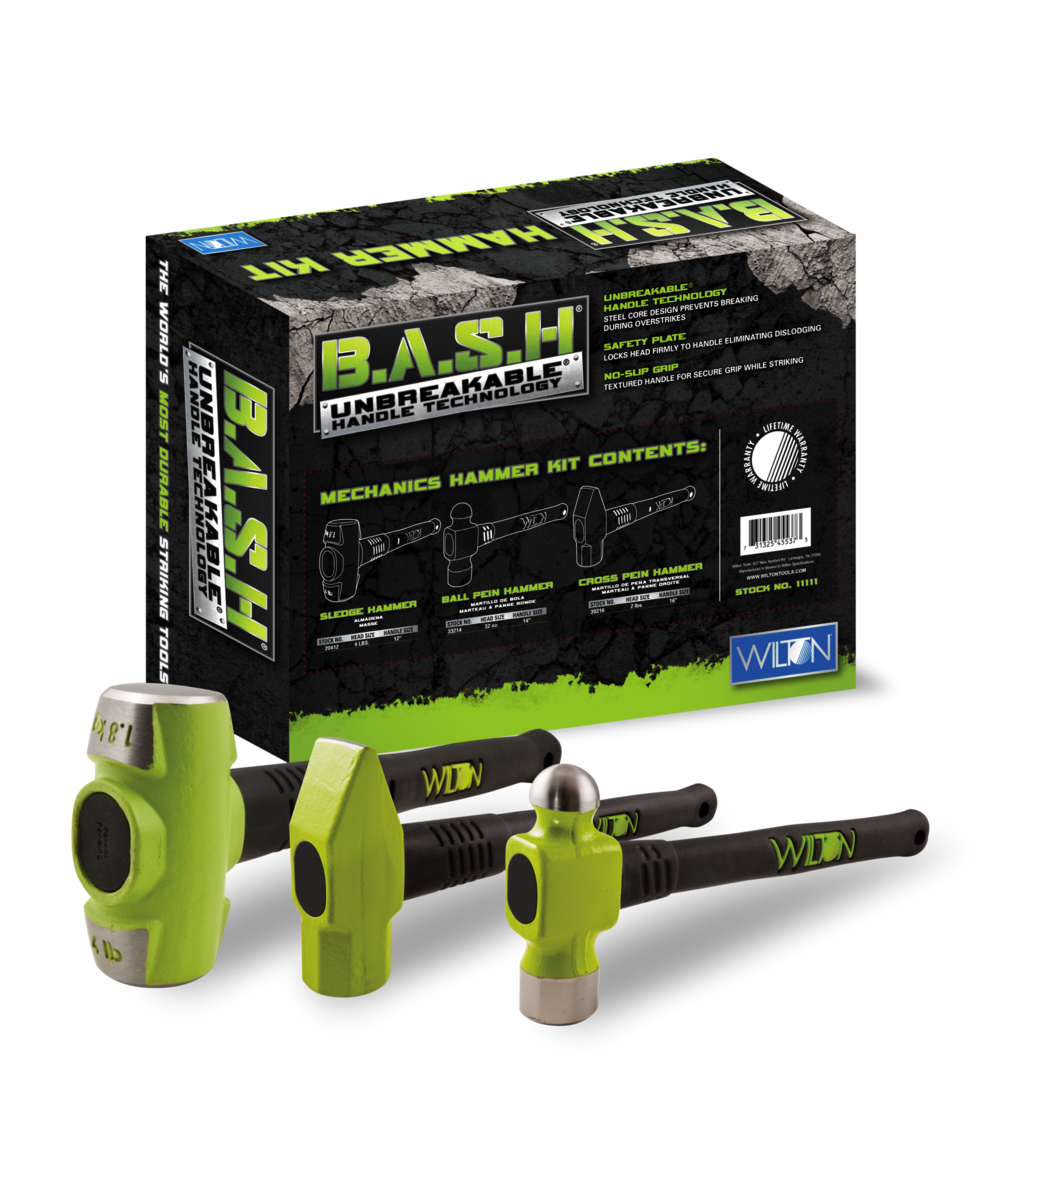 B.A.S.H® Mechanics Hammer Kit